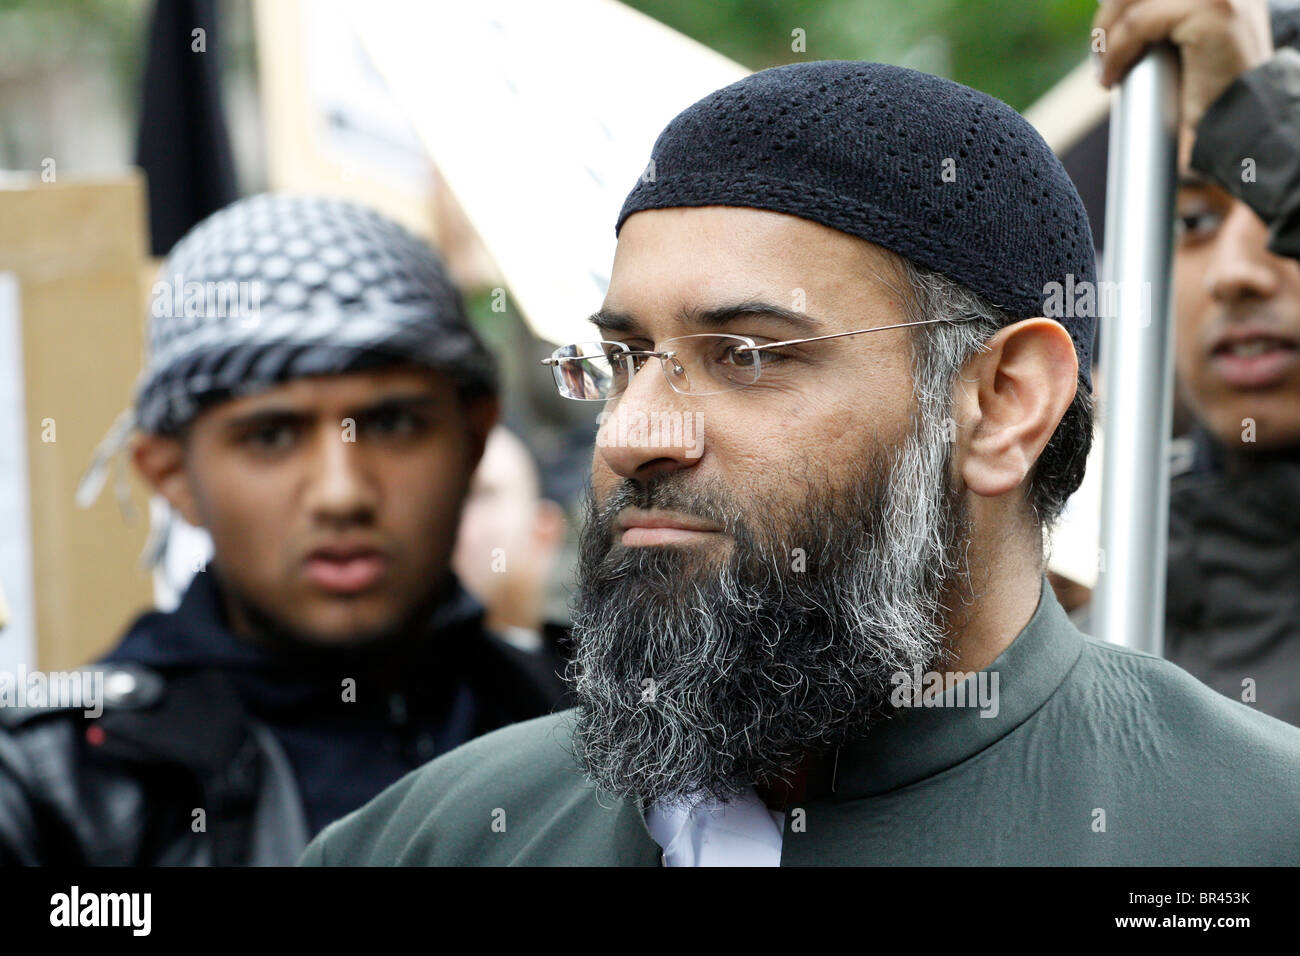 Anjem Choudary of the Muslims Against Crusades (MAC) group formerly of Islam4UK, September 11th 2010 - Stock Image